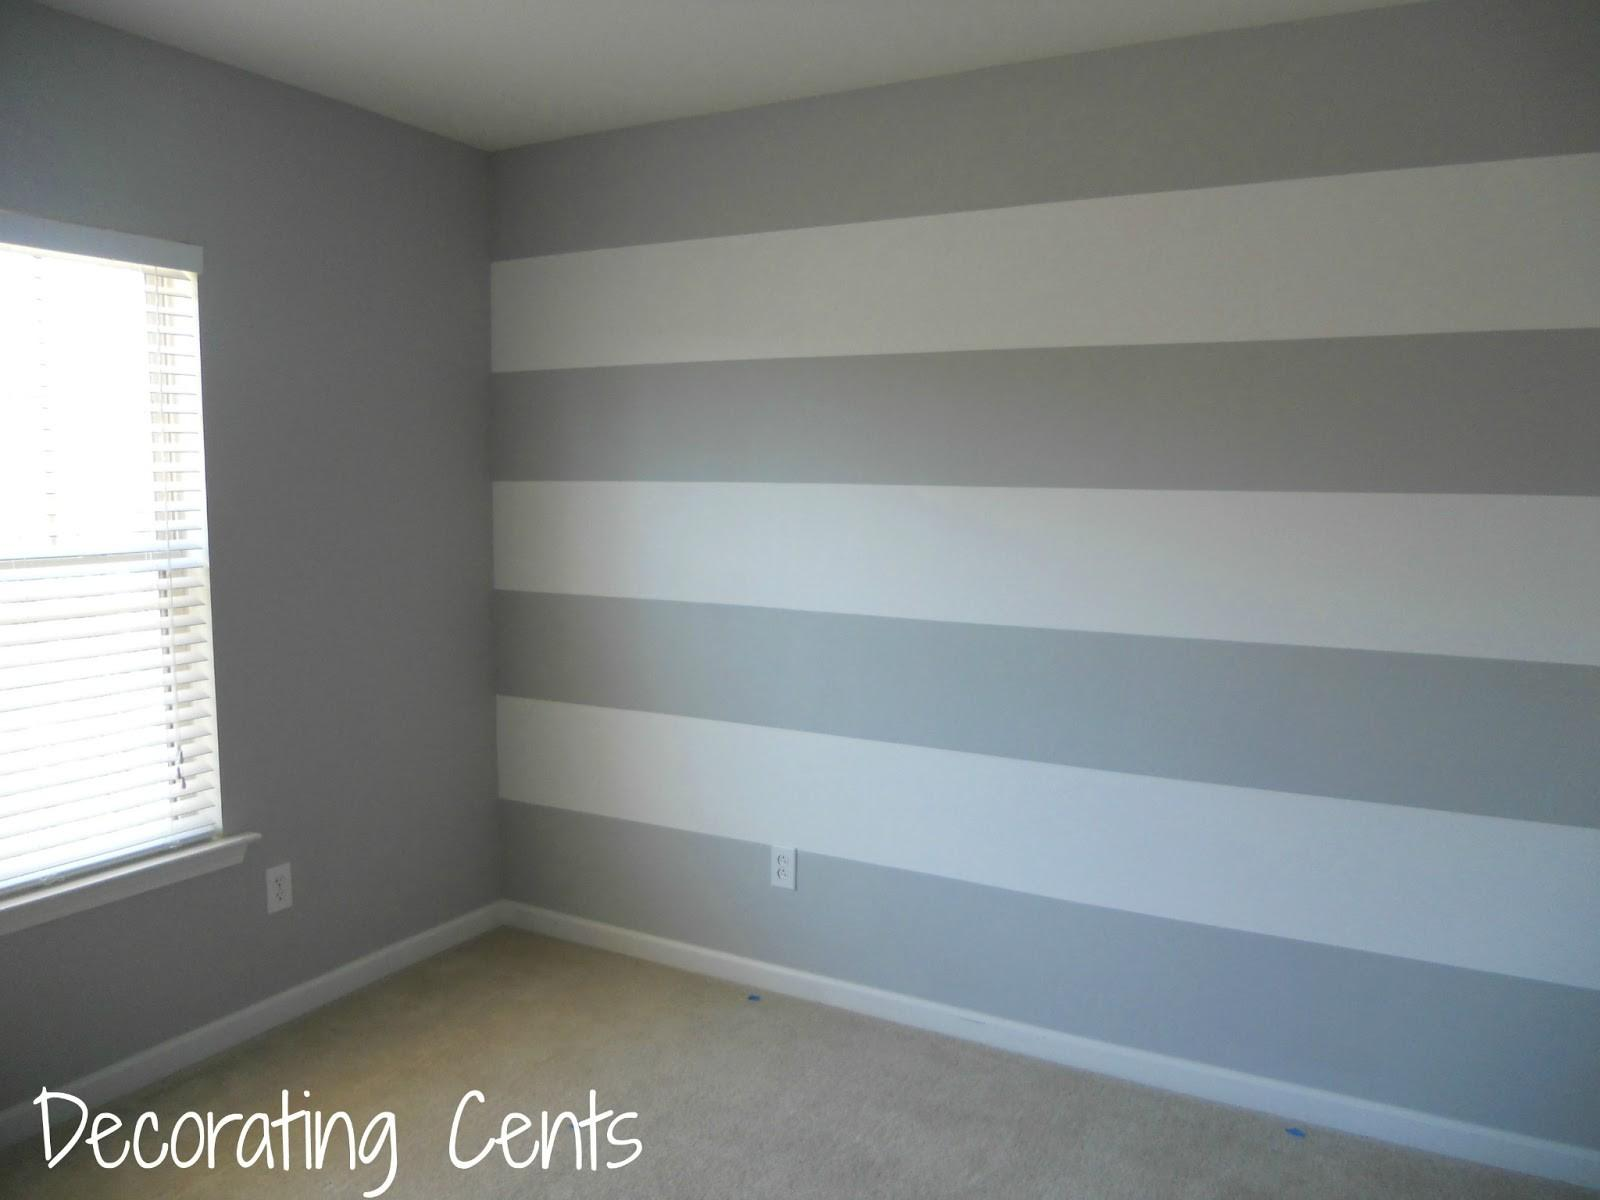 Decorating Cents Painting Striped Wall Arafen